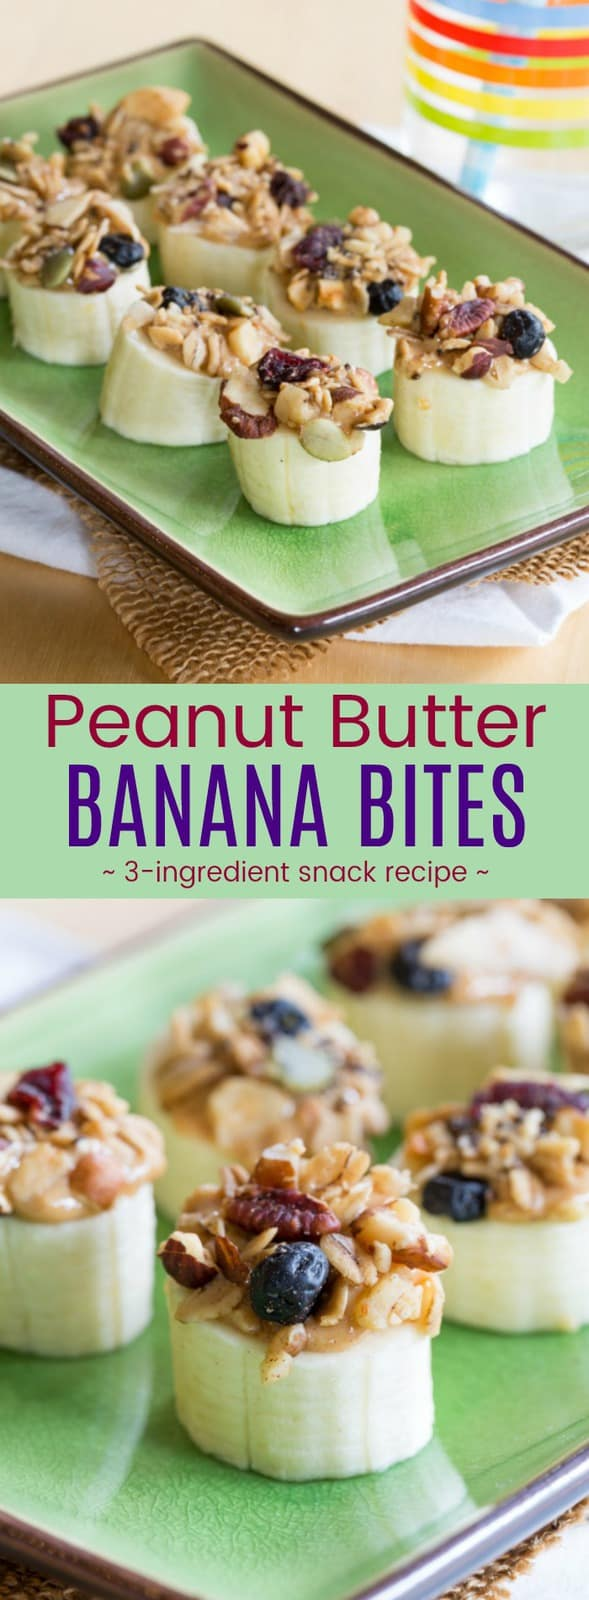 Peanut Butter Banana Bites - an easy three-ingredient snack recipe kids will love. Fast, healthy, super yummy, and easy to make gluten-free, vegan, and even nut-free depending on your choice of nut butter or sunflower seed butter and granola. #cupcakesandkalechips #snack #healthysnack #glutenfree #vegan #bananas #easyrecipe